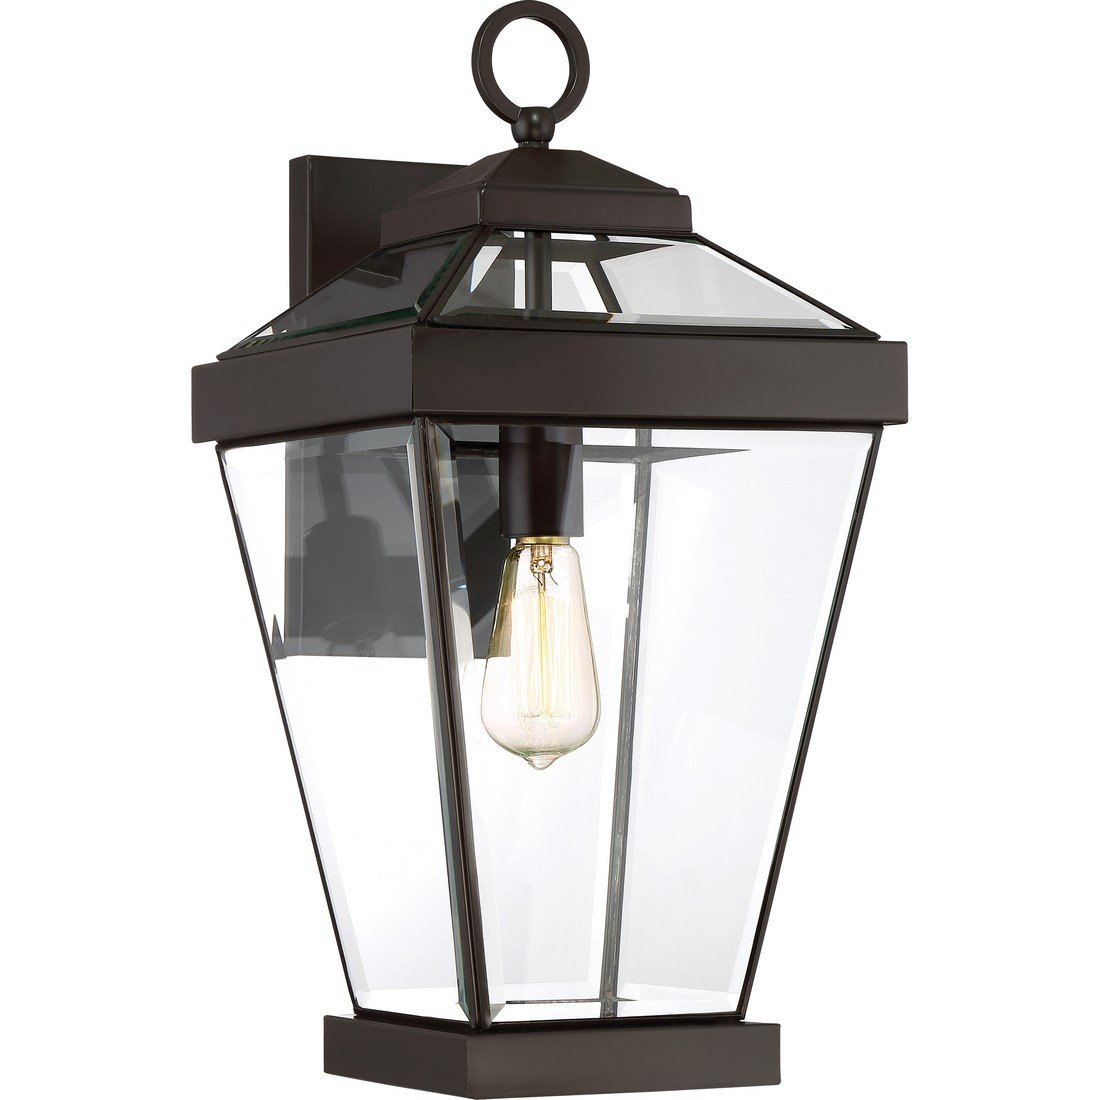 Quoizel One Light Outdoor Wall Lantern RAV8410WT, Large, Western Bronze by Quoizel